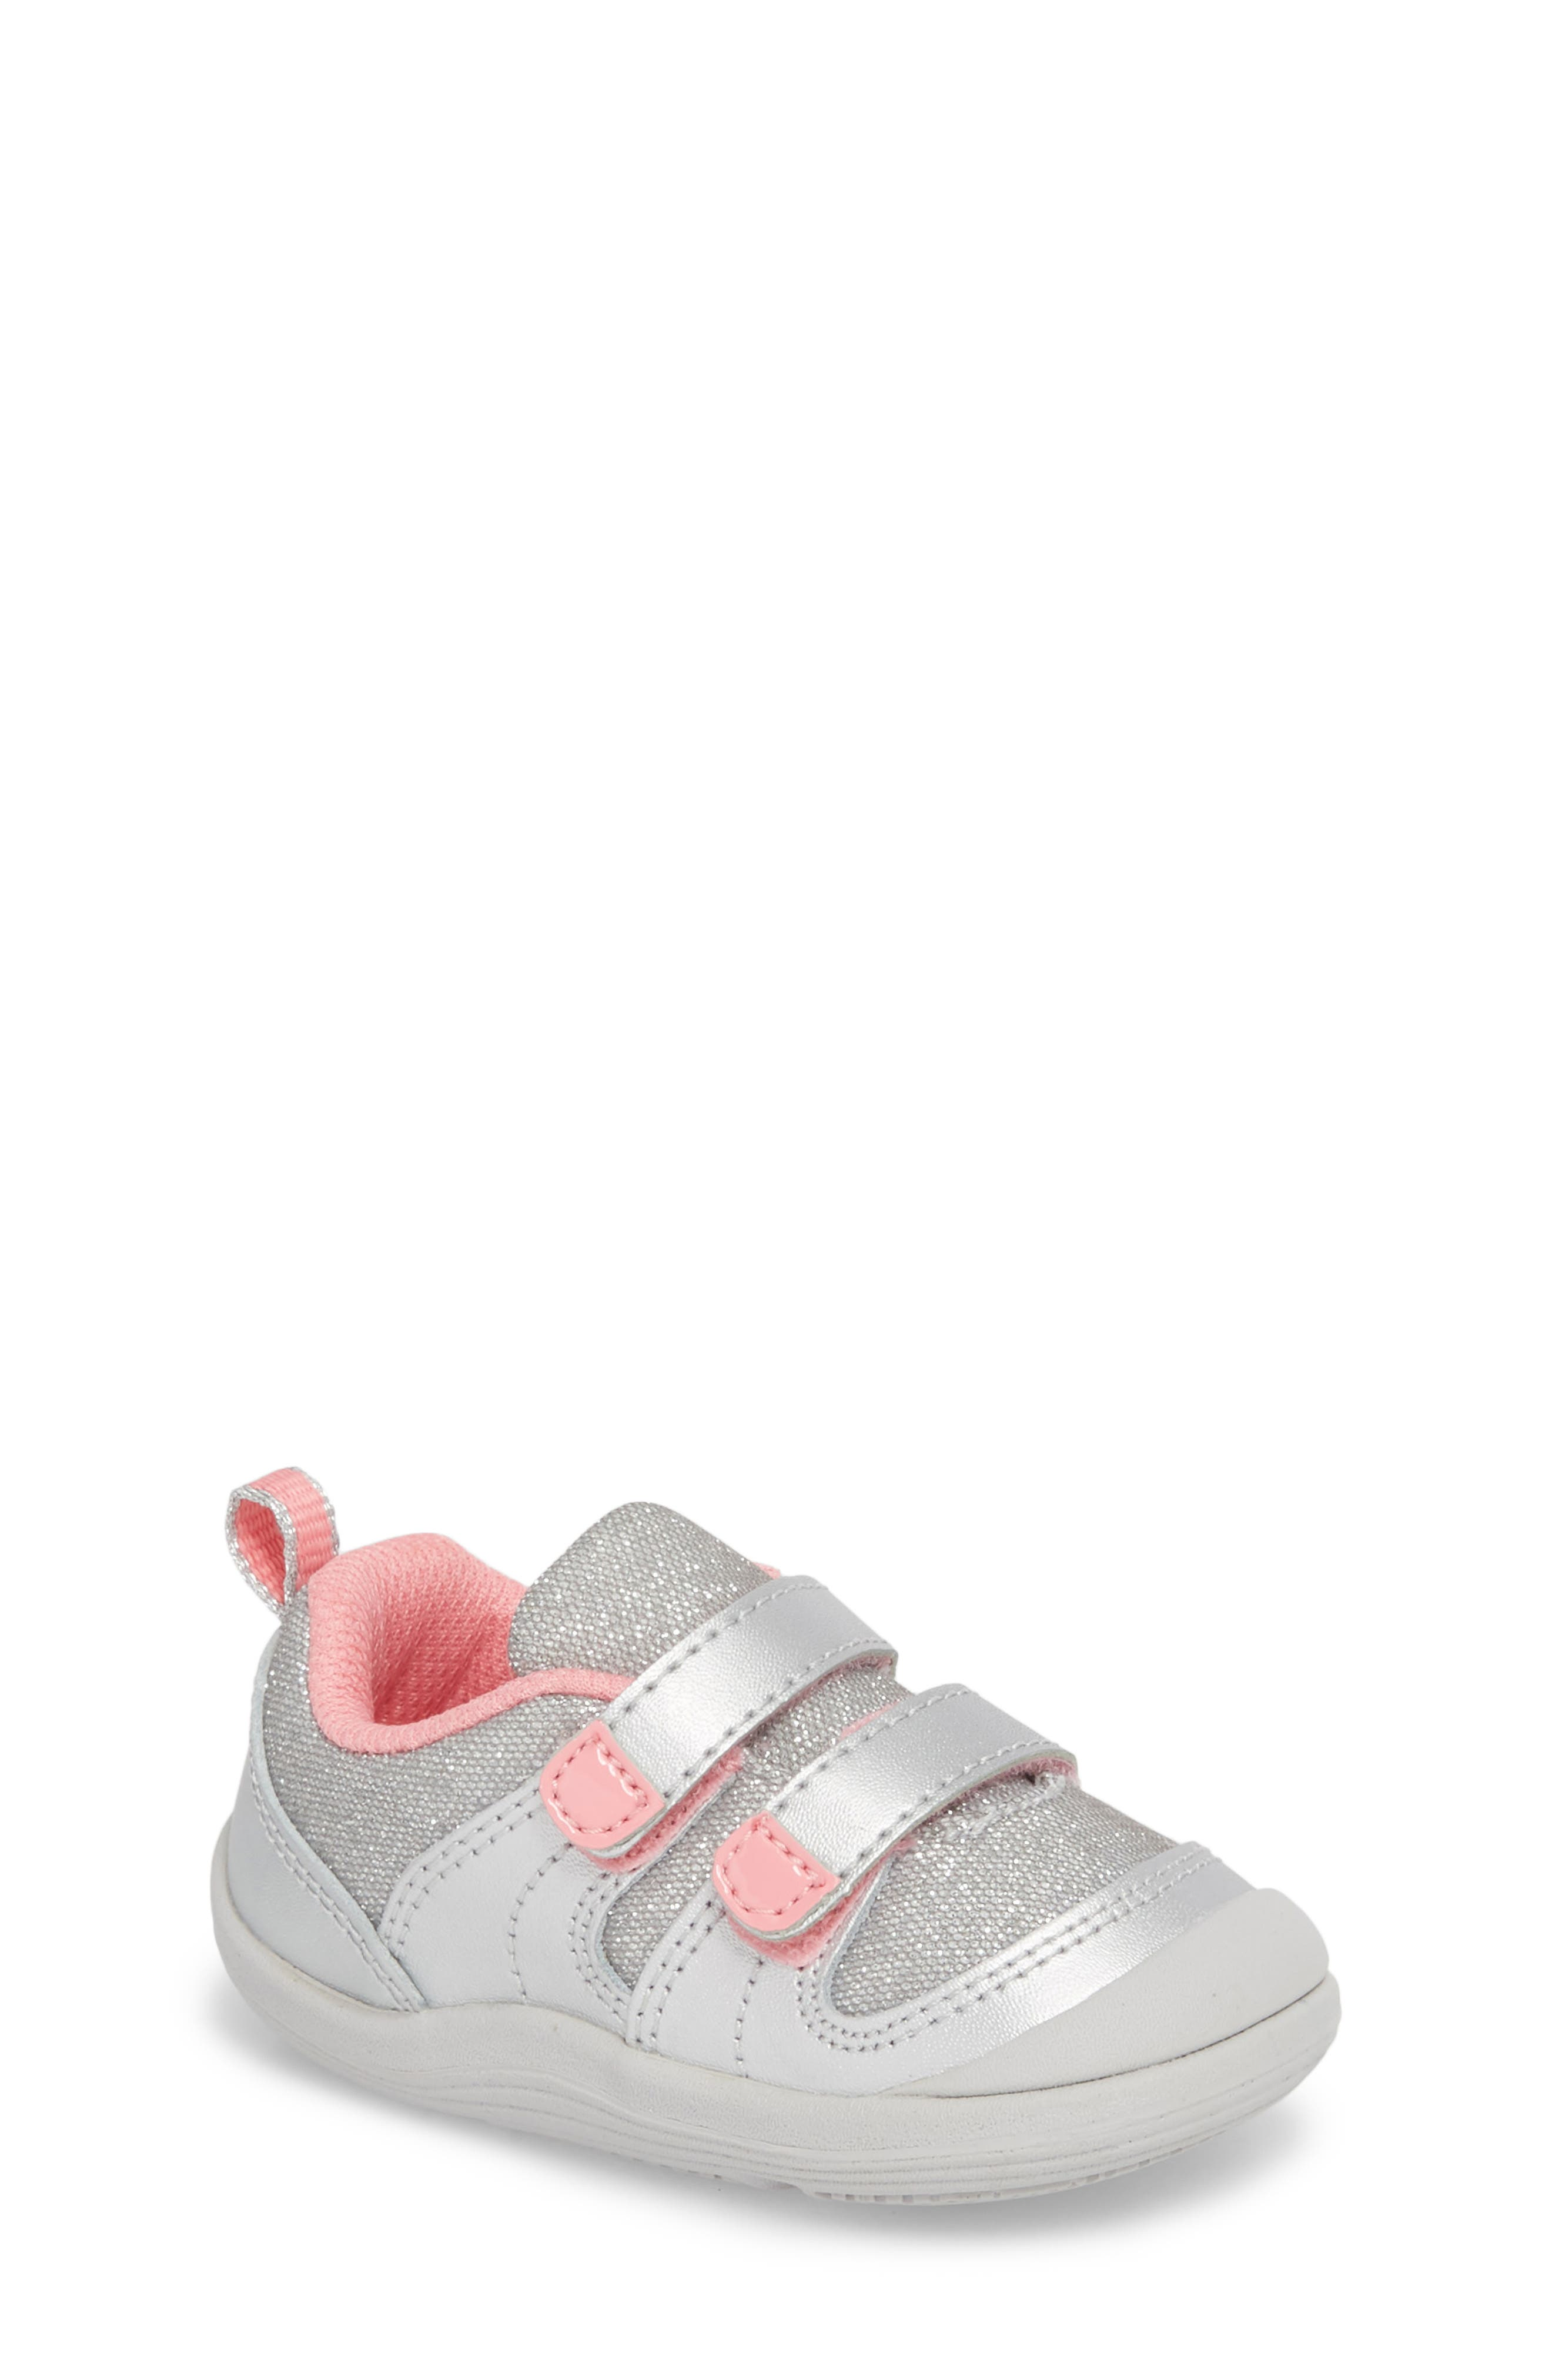 Maura Metallic Sneaker,                         Main,                         color, Silver/ Pink Leather